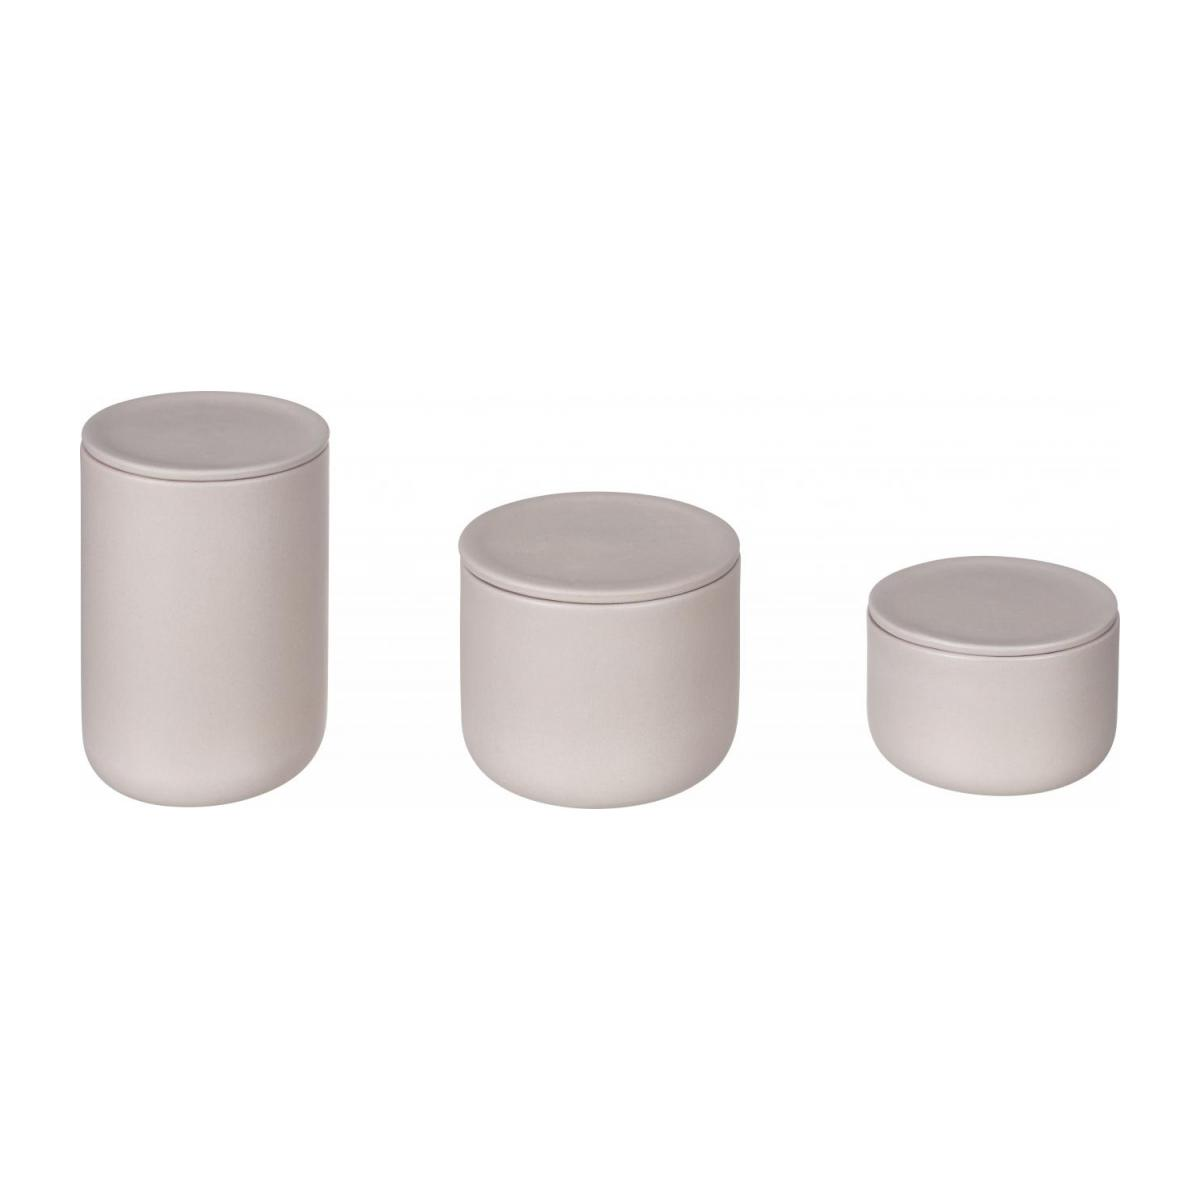 Stoneware Grey Boxes Set of 3 with lids n°3